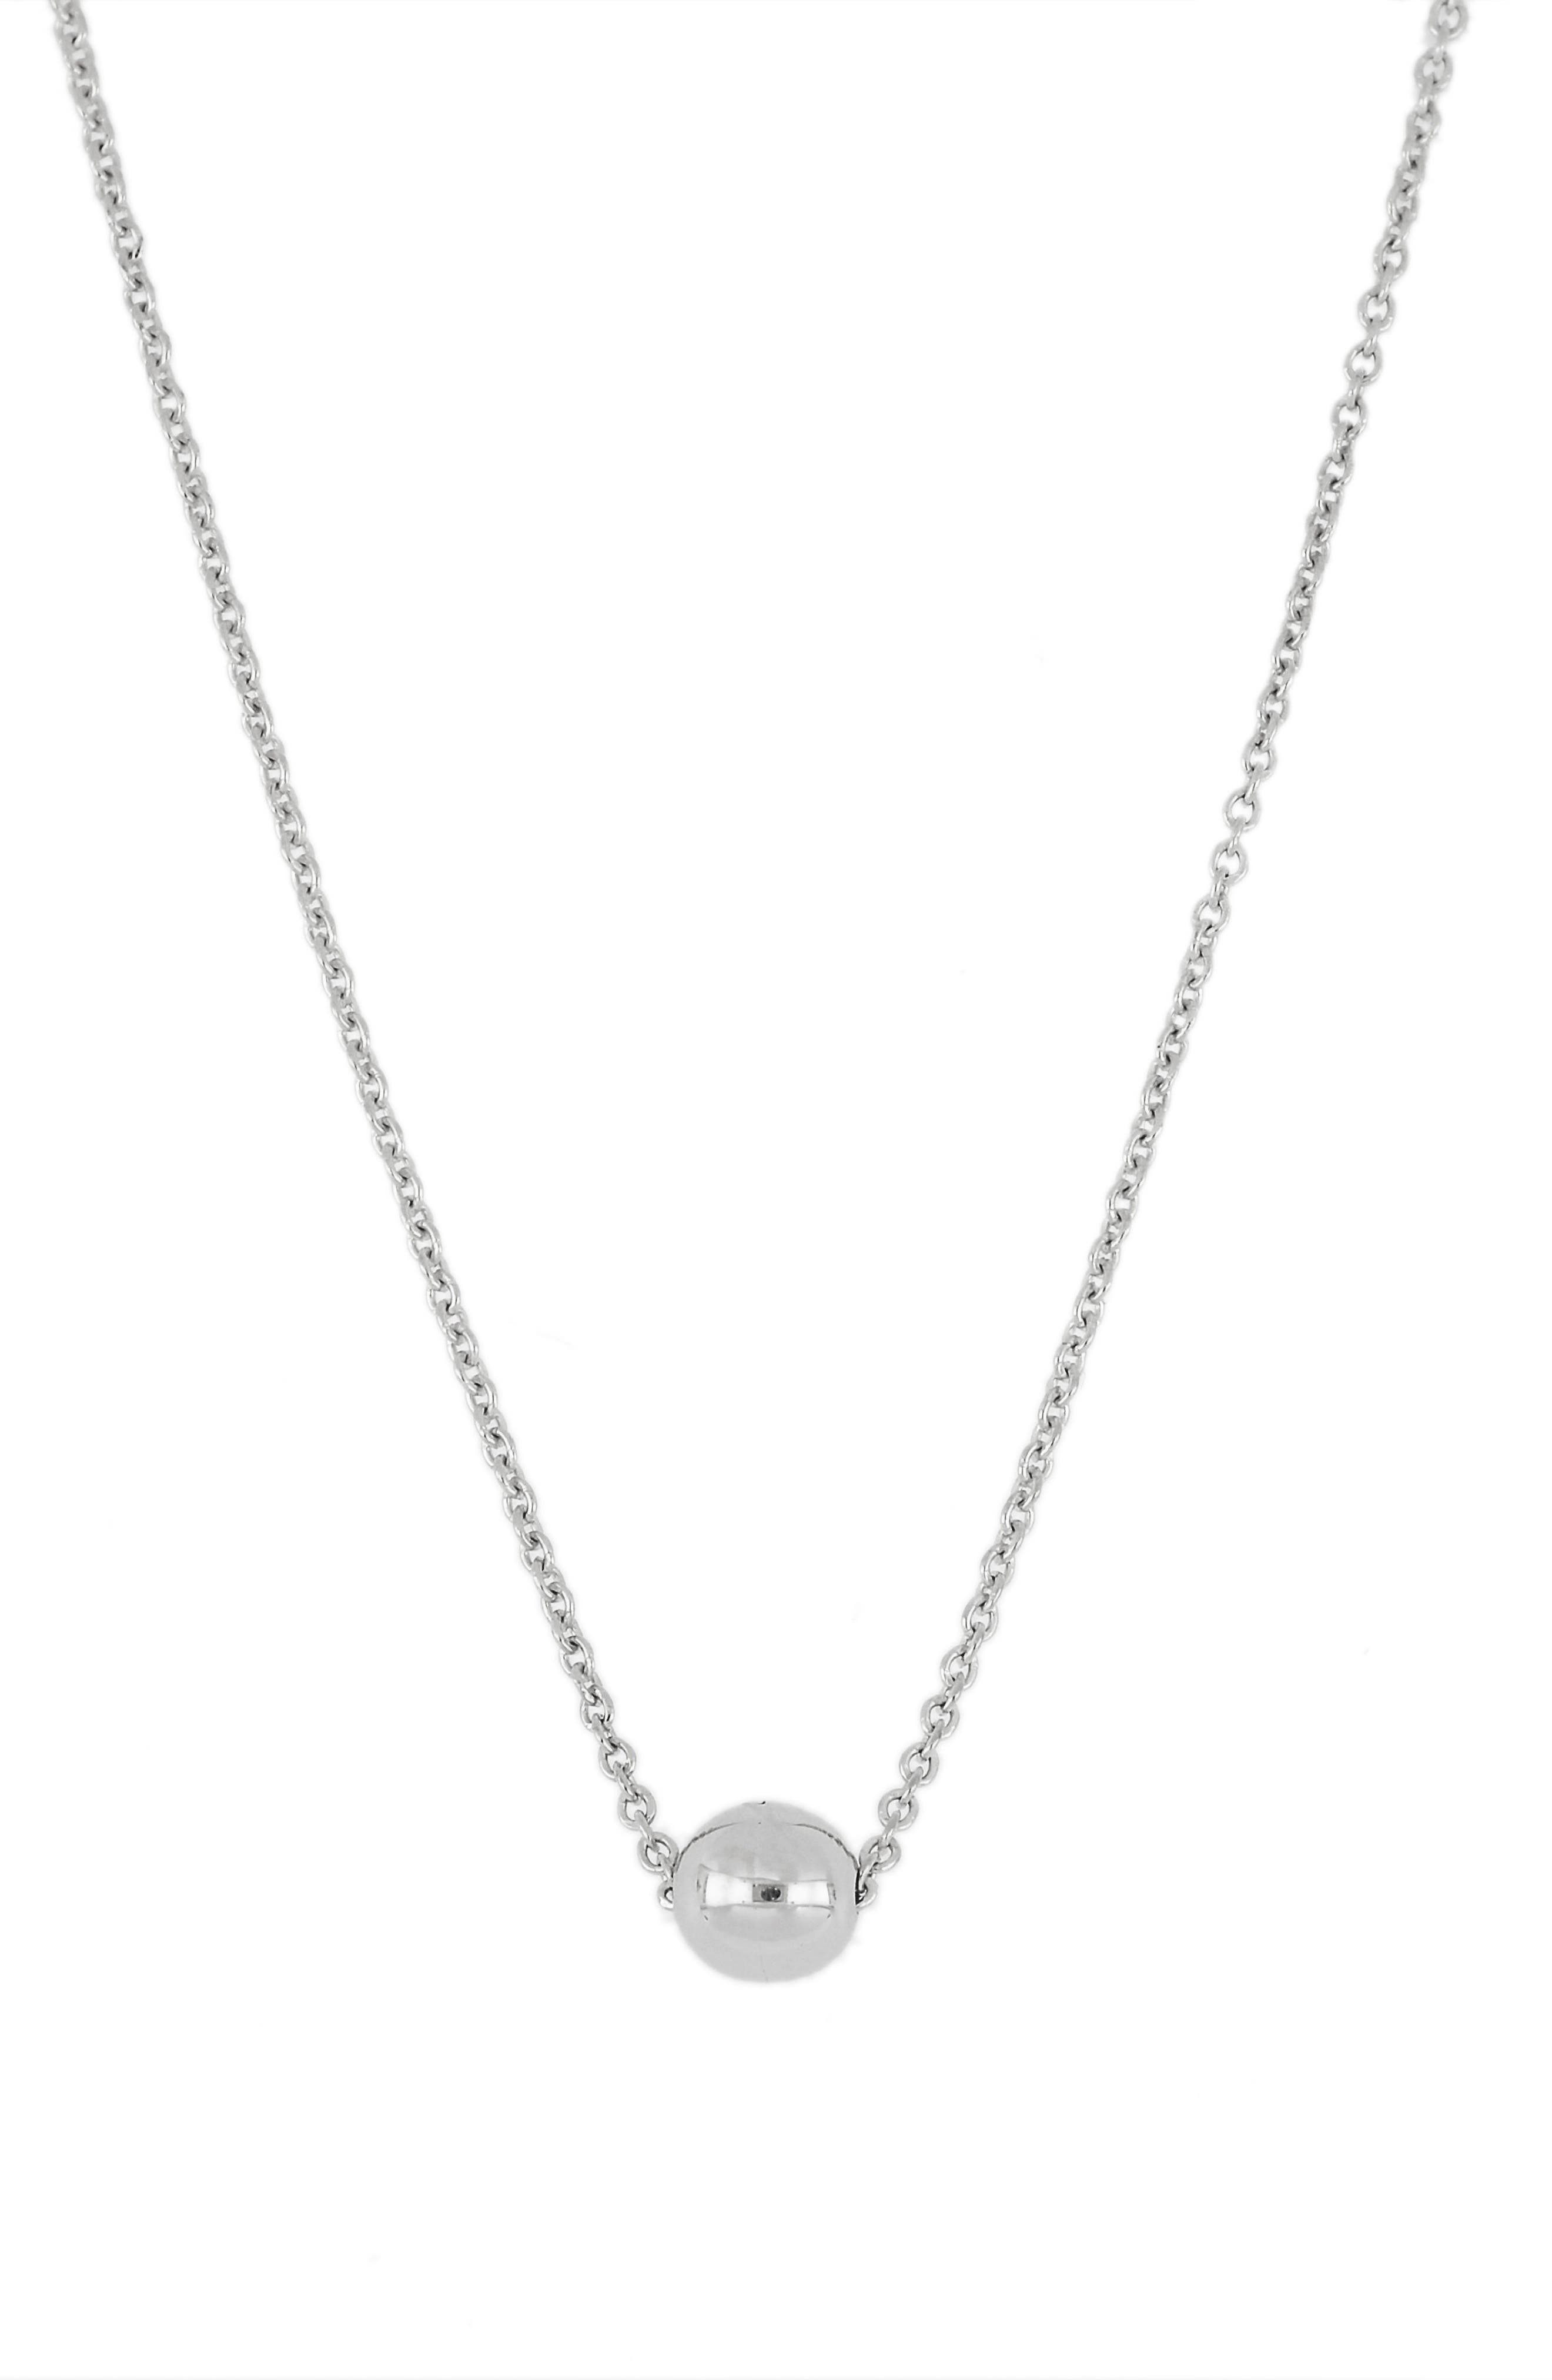 Ball Pendant Necklace,                             Main thumbnail 1, color,                             White Gold